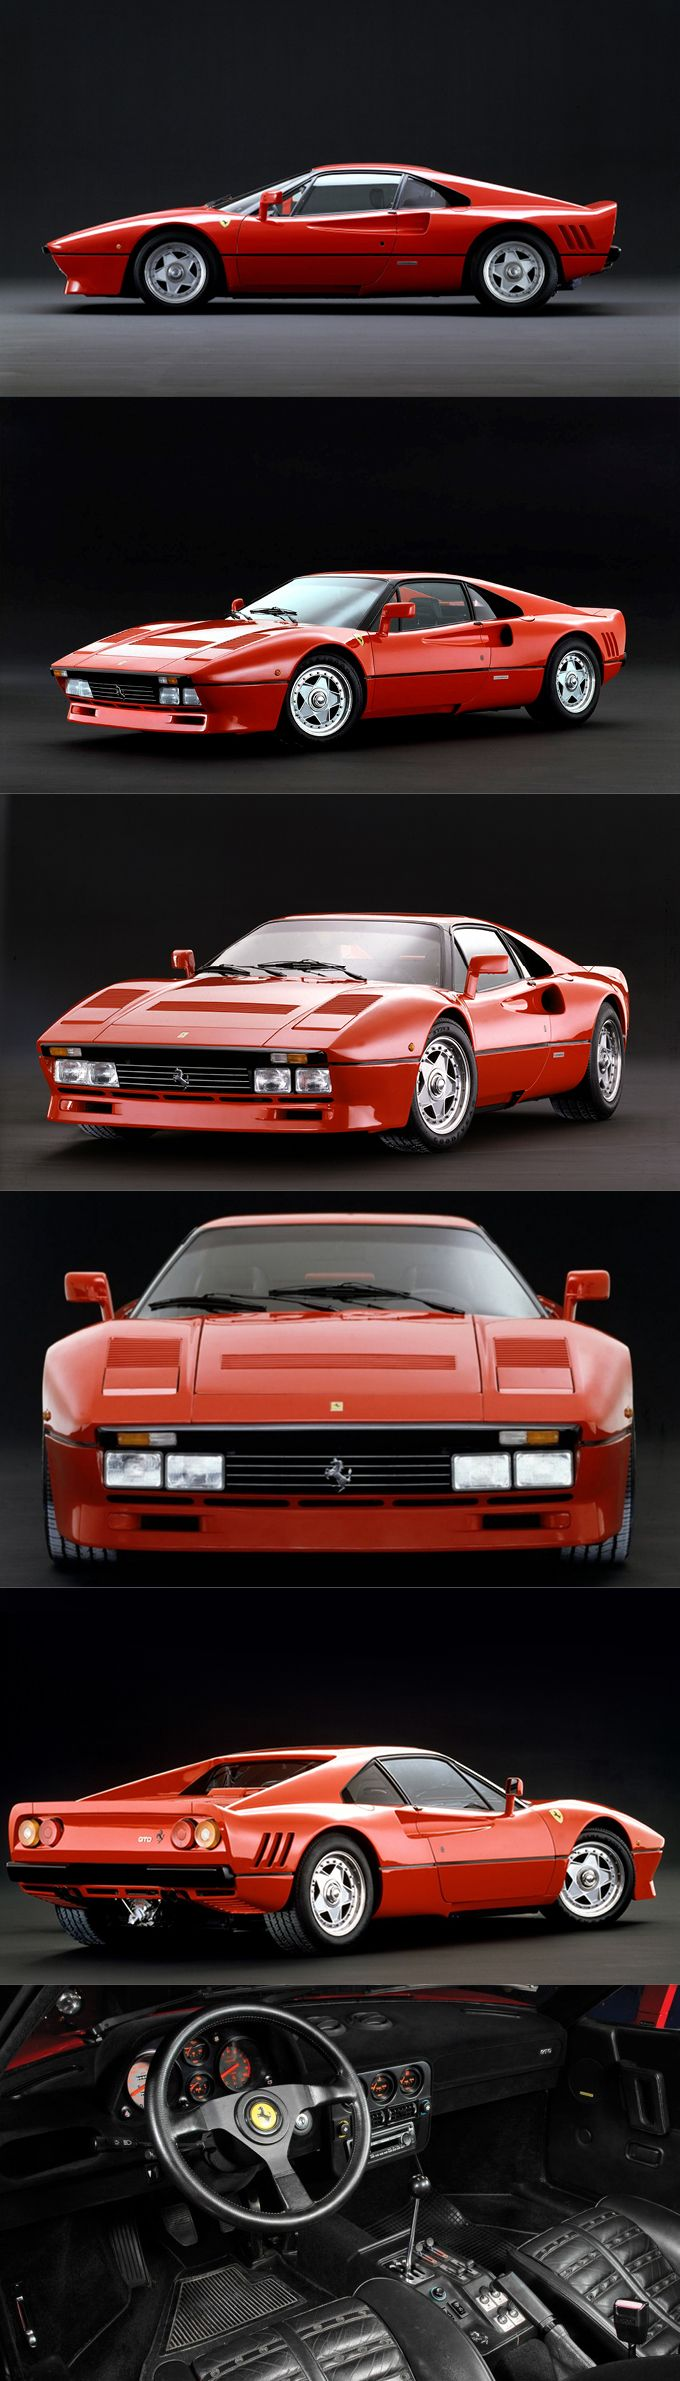 1984 #Ferrari 288 GTO / Group B homologation / 272pcs / red / Italy / Leonardo Fioravanti @ Pininfarina #italiandesign